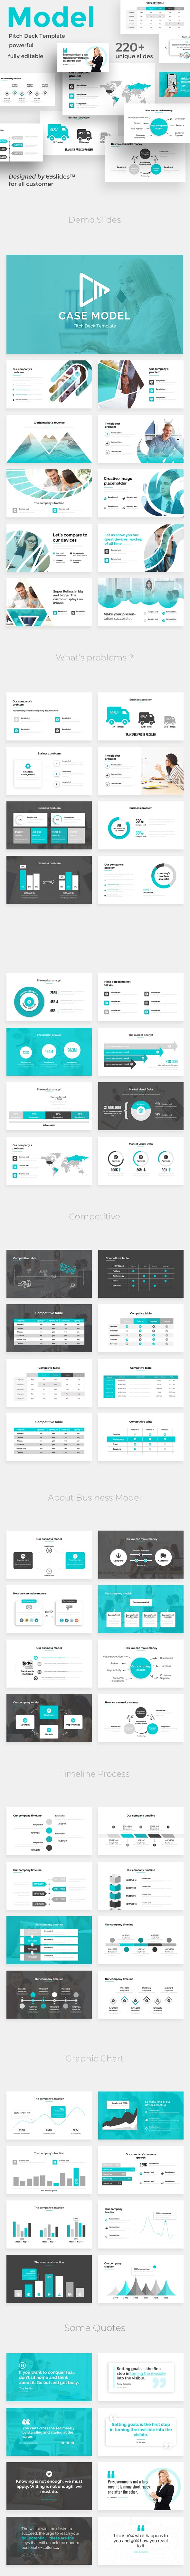 Case Model Pitch Deck Keynote Template - Business Keynote Templates